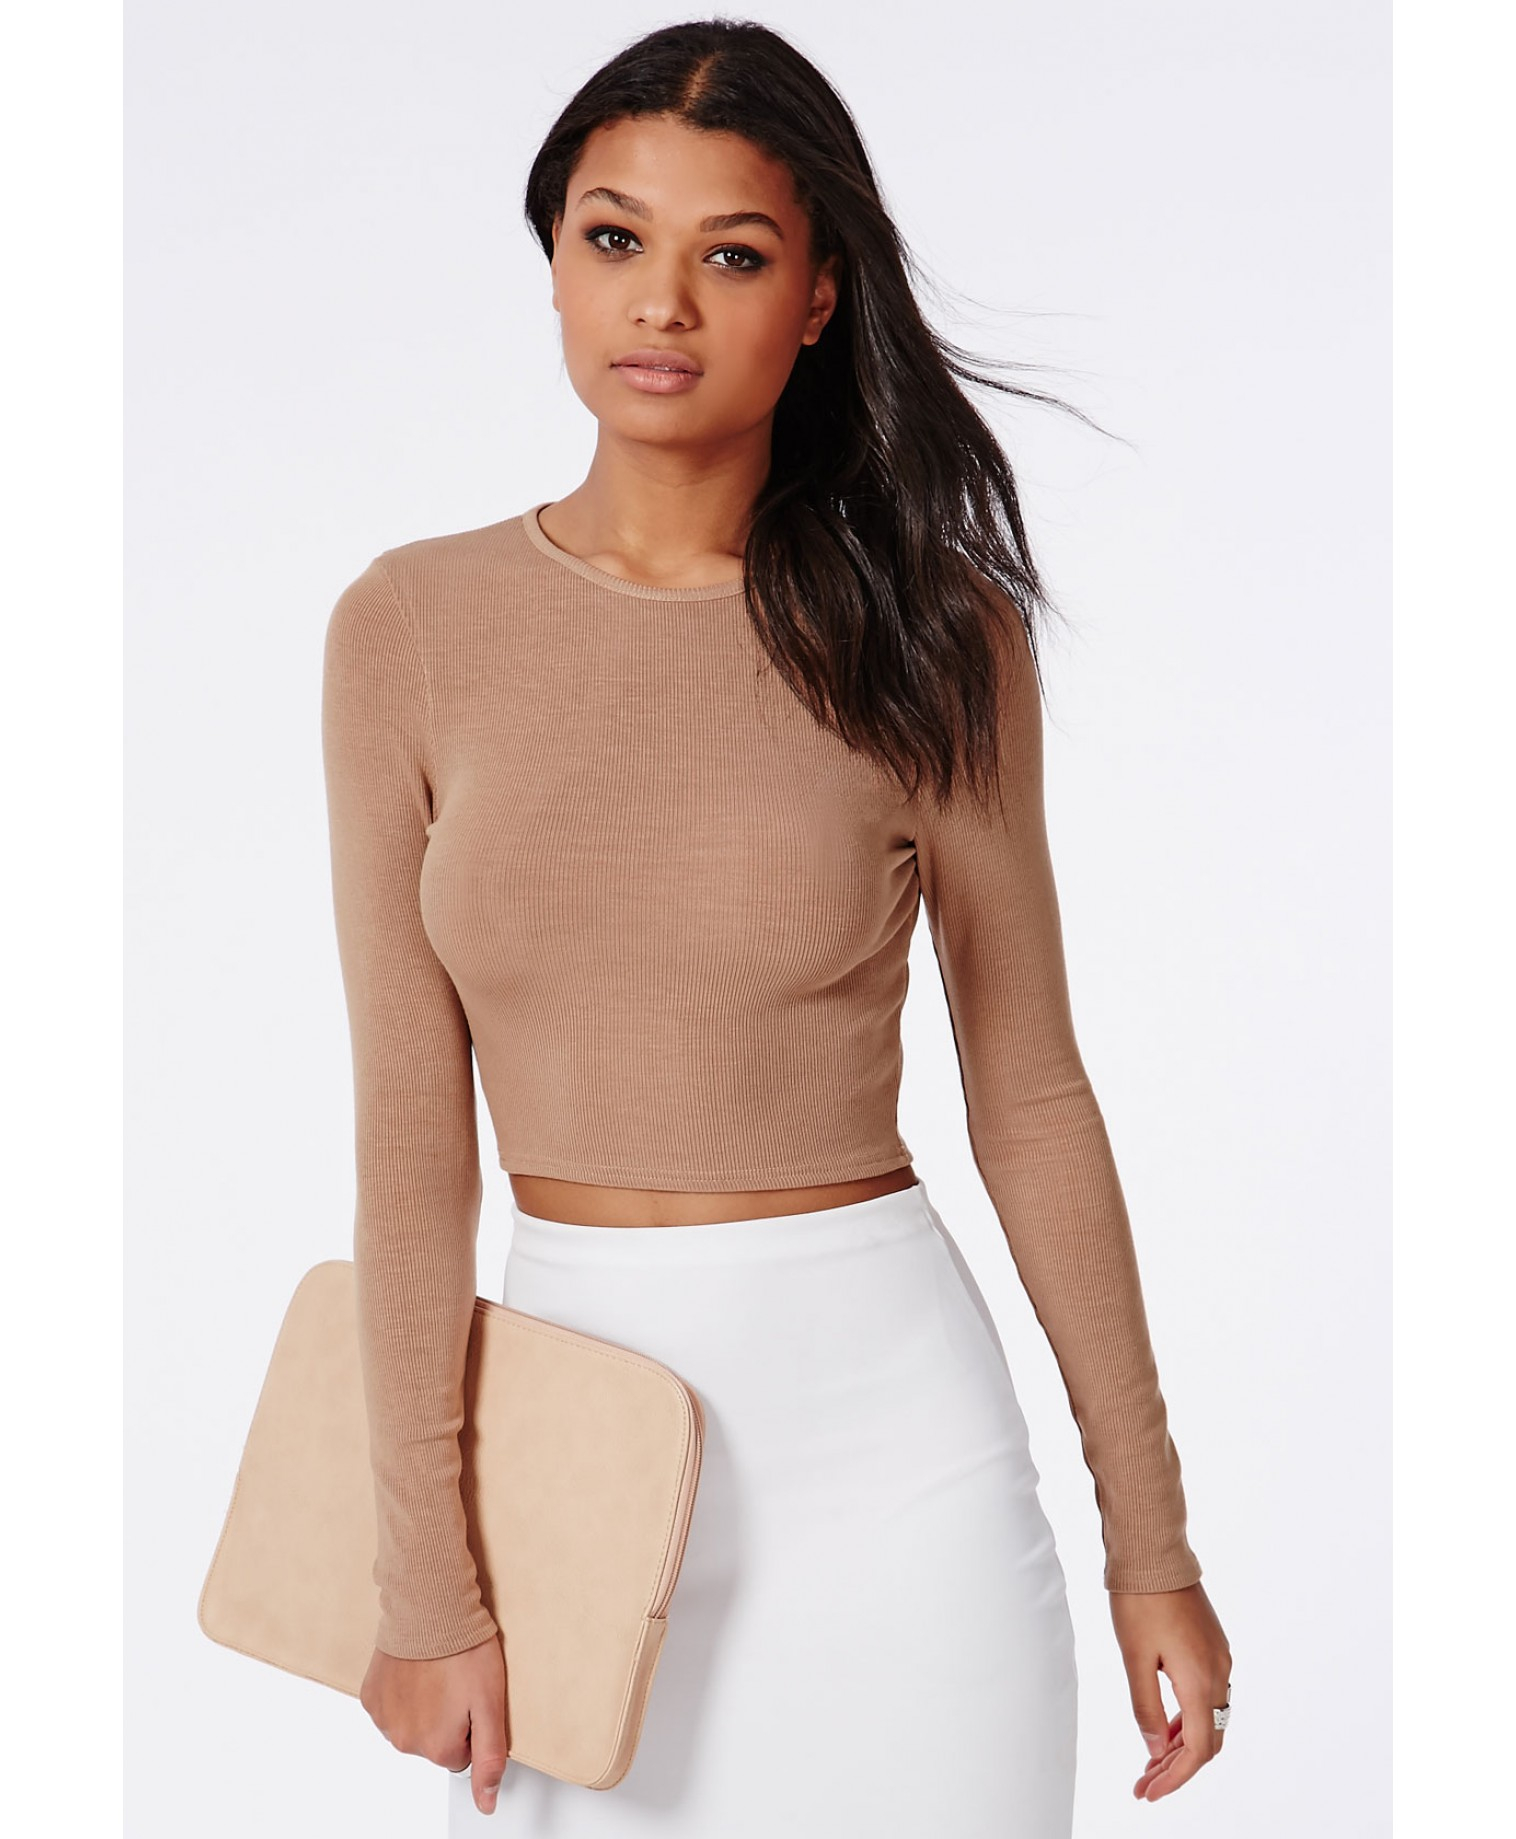 You might associate crop tops with warm weather, but that's the fun of wearing one when it's cooler—it's totally unexpected, and very sexy. Throw on one of these long sleeve ones under a.